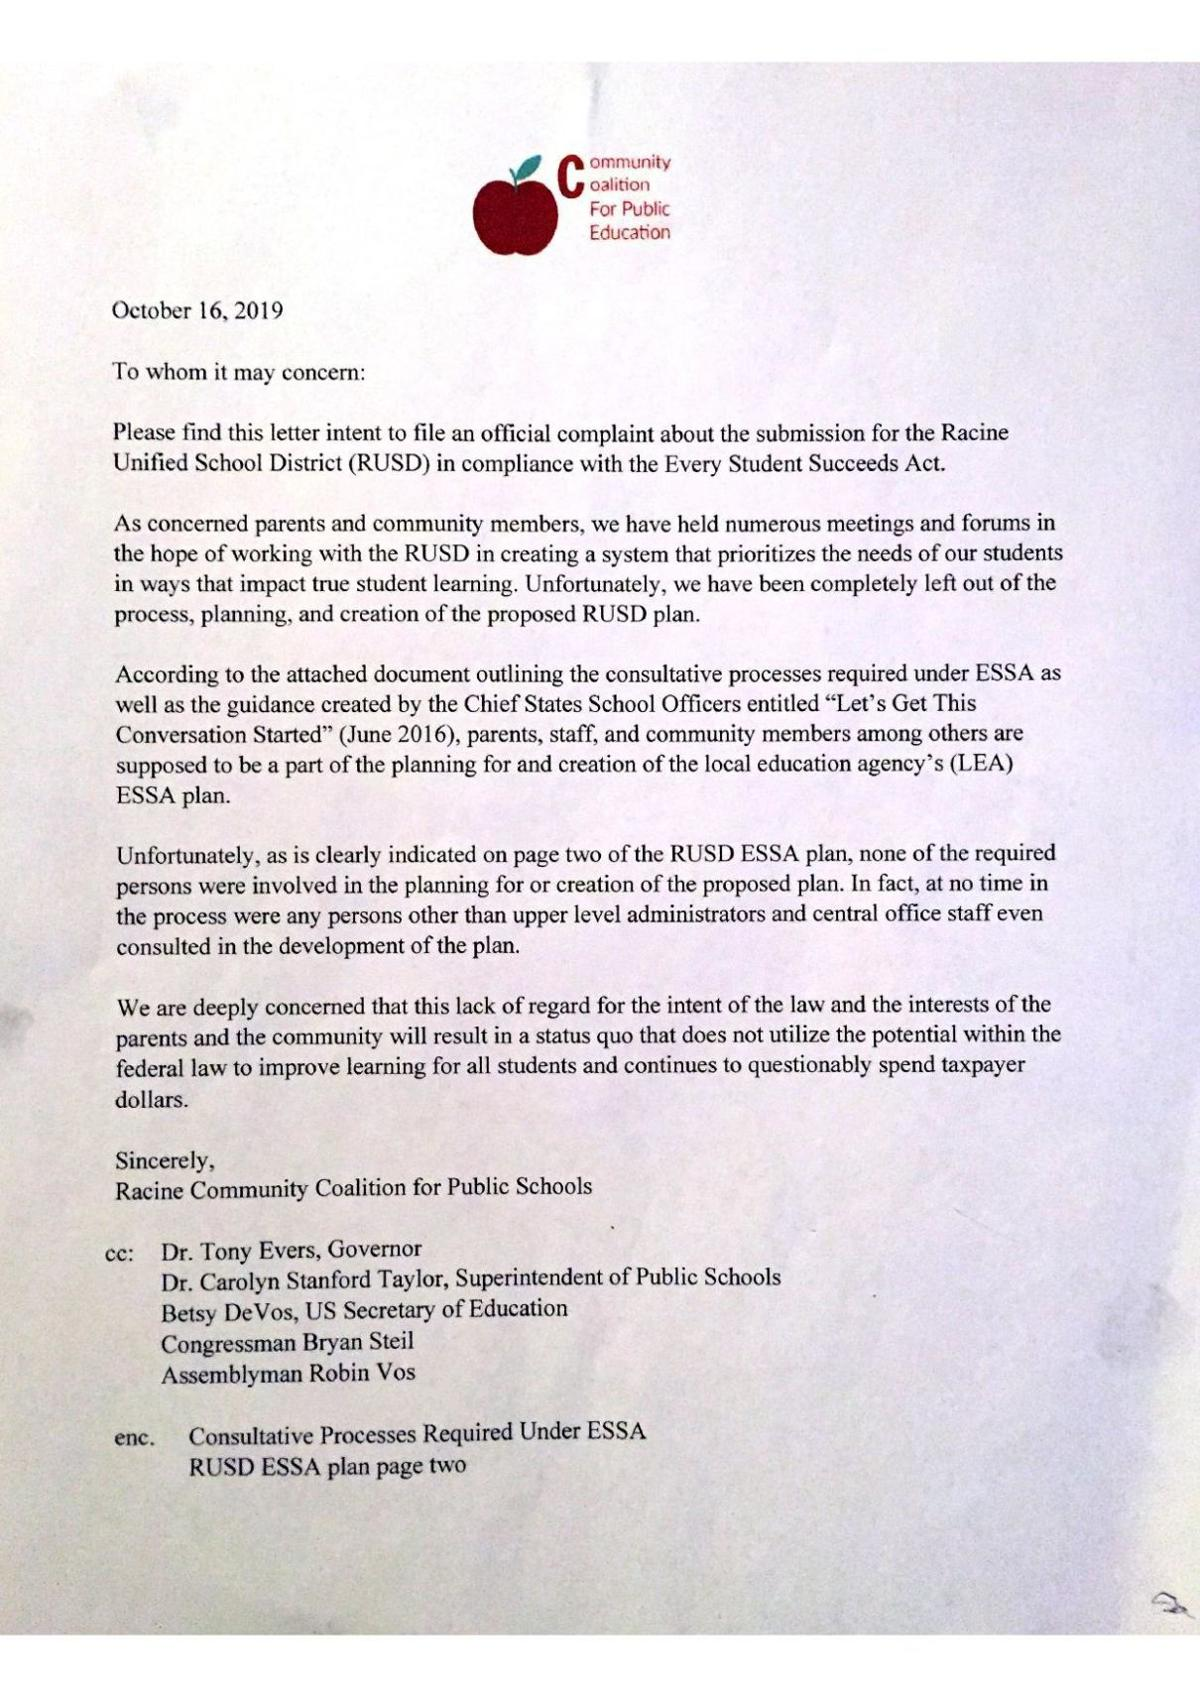 Letter from Racine Community Coalition for Public Schools announcing intent to filed complaint with DPI against RUSD